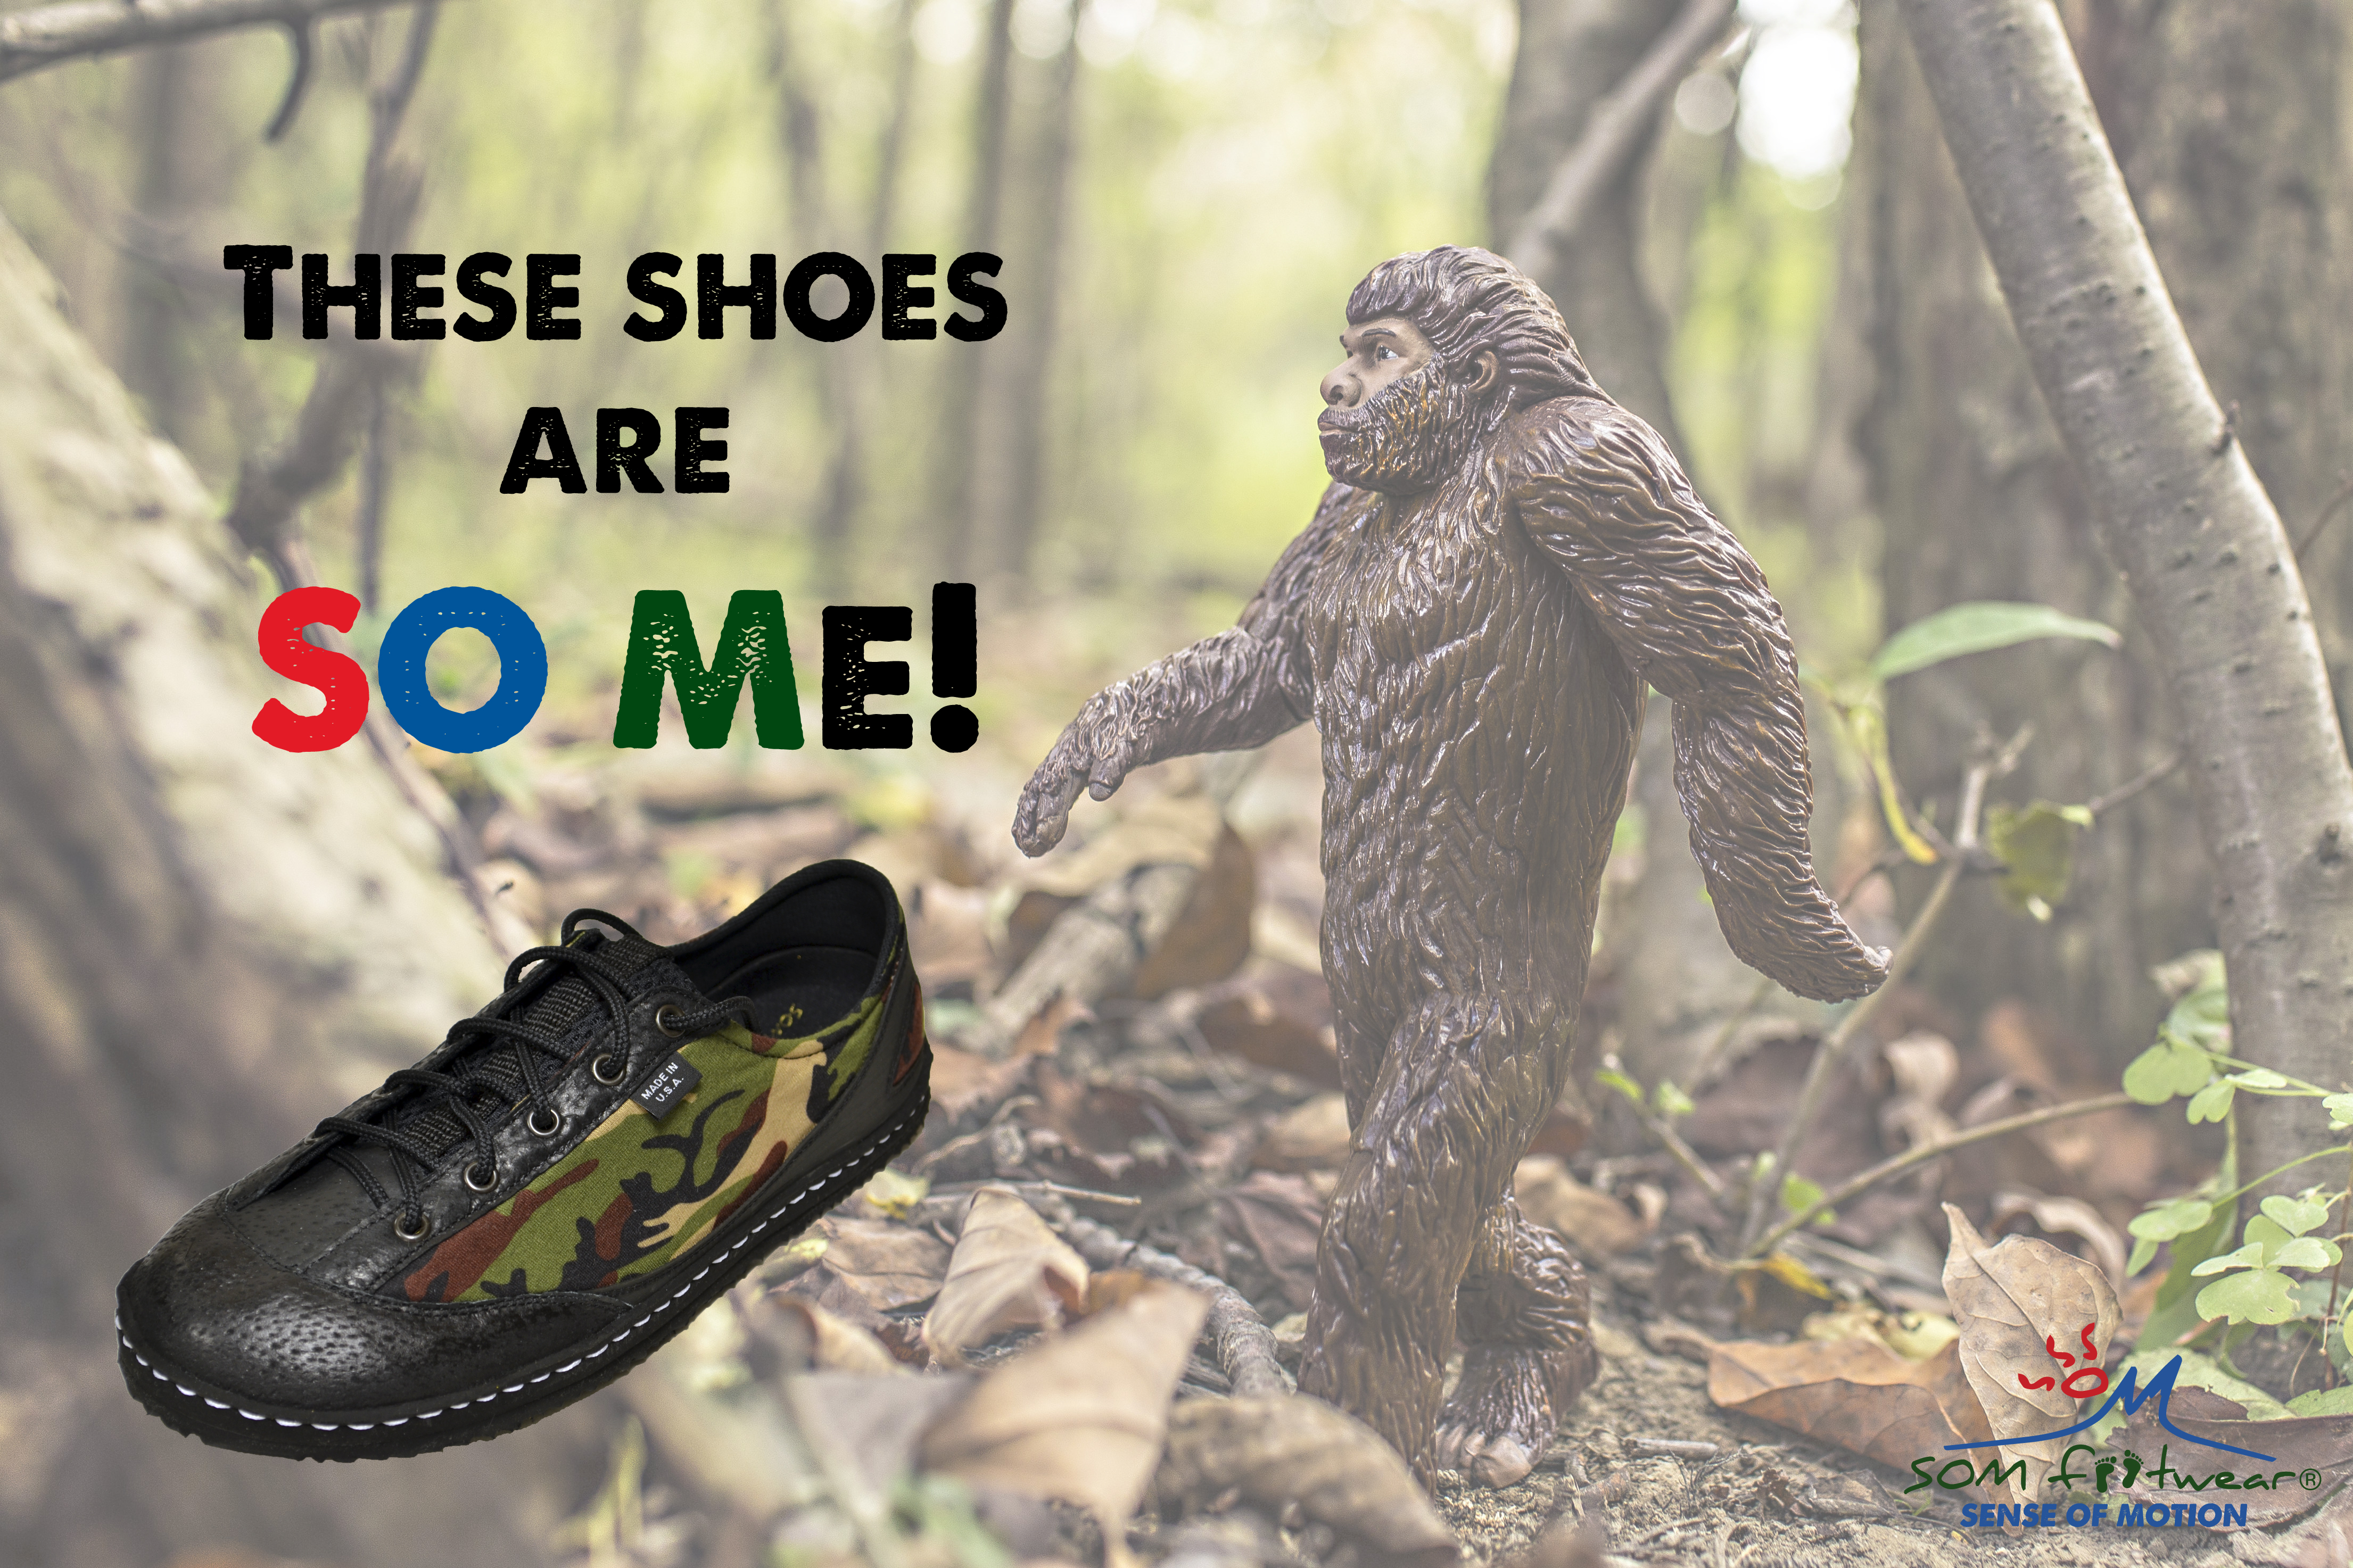 Create your own American made custom shoe with SOM Footwear.